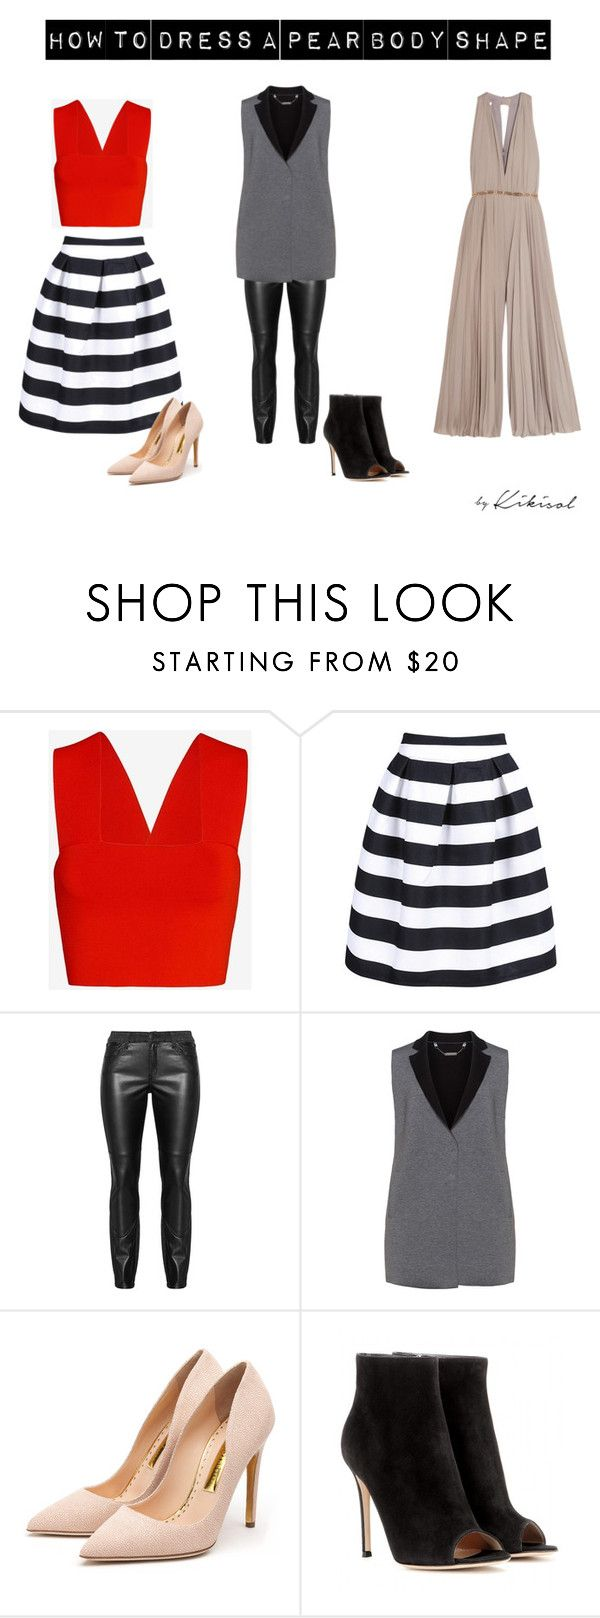 """""""How to Dress a Pear Body Shape"""" by bykikisol on Polyvore featuring A.L.C., Manon Baptiste, Rupert Sanderson, Gianvito Rossi, Halston Heritage, women's clothing, women, female, woman and misses"""